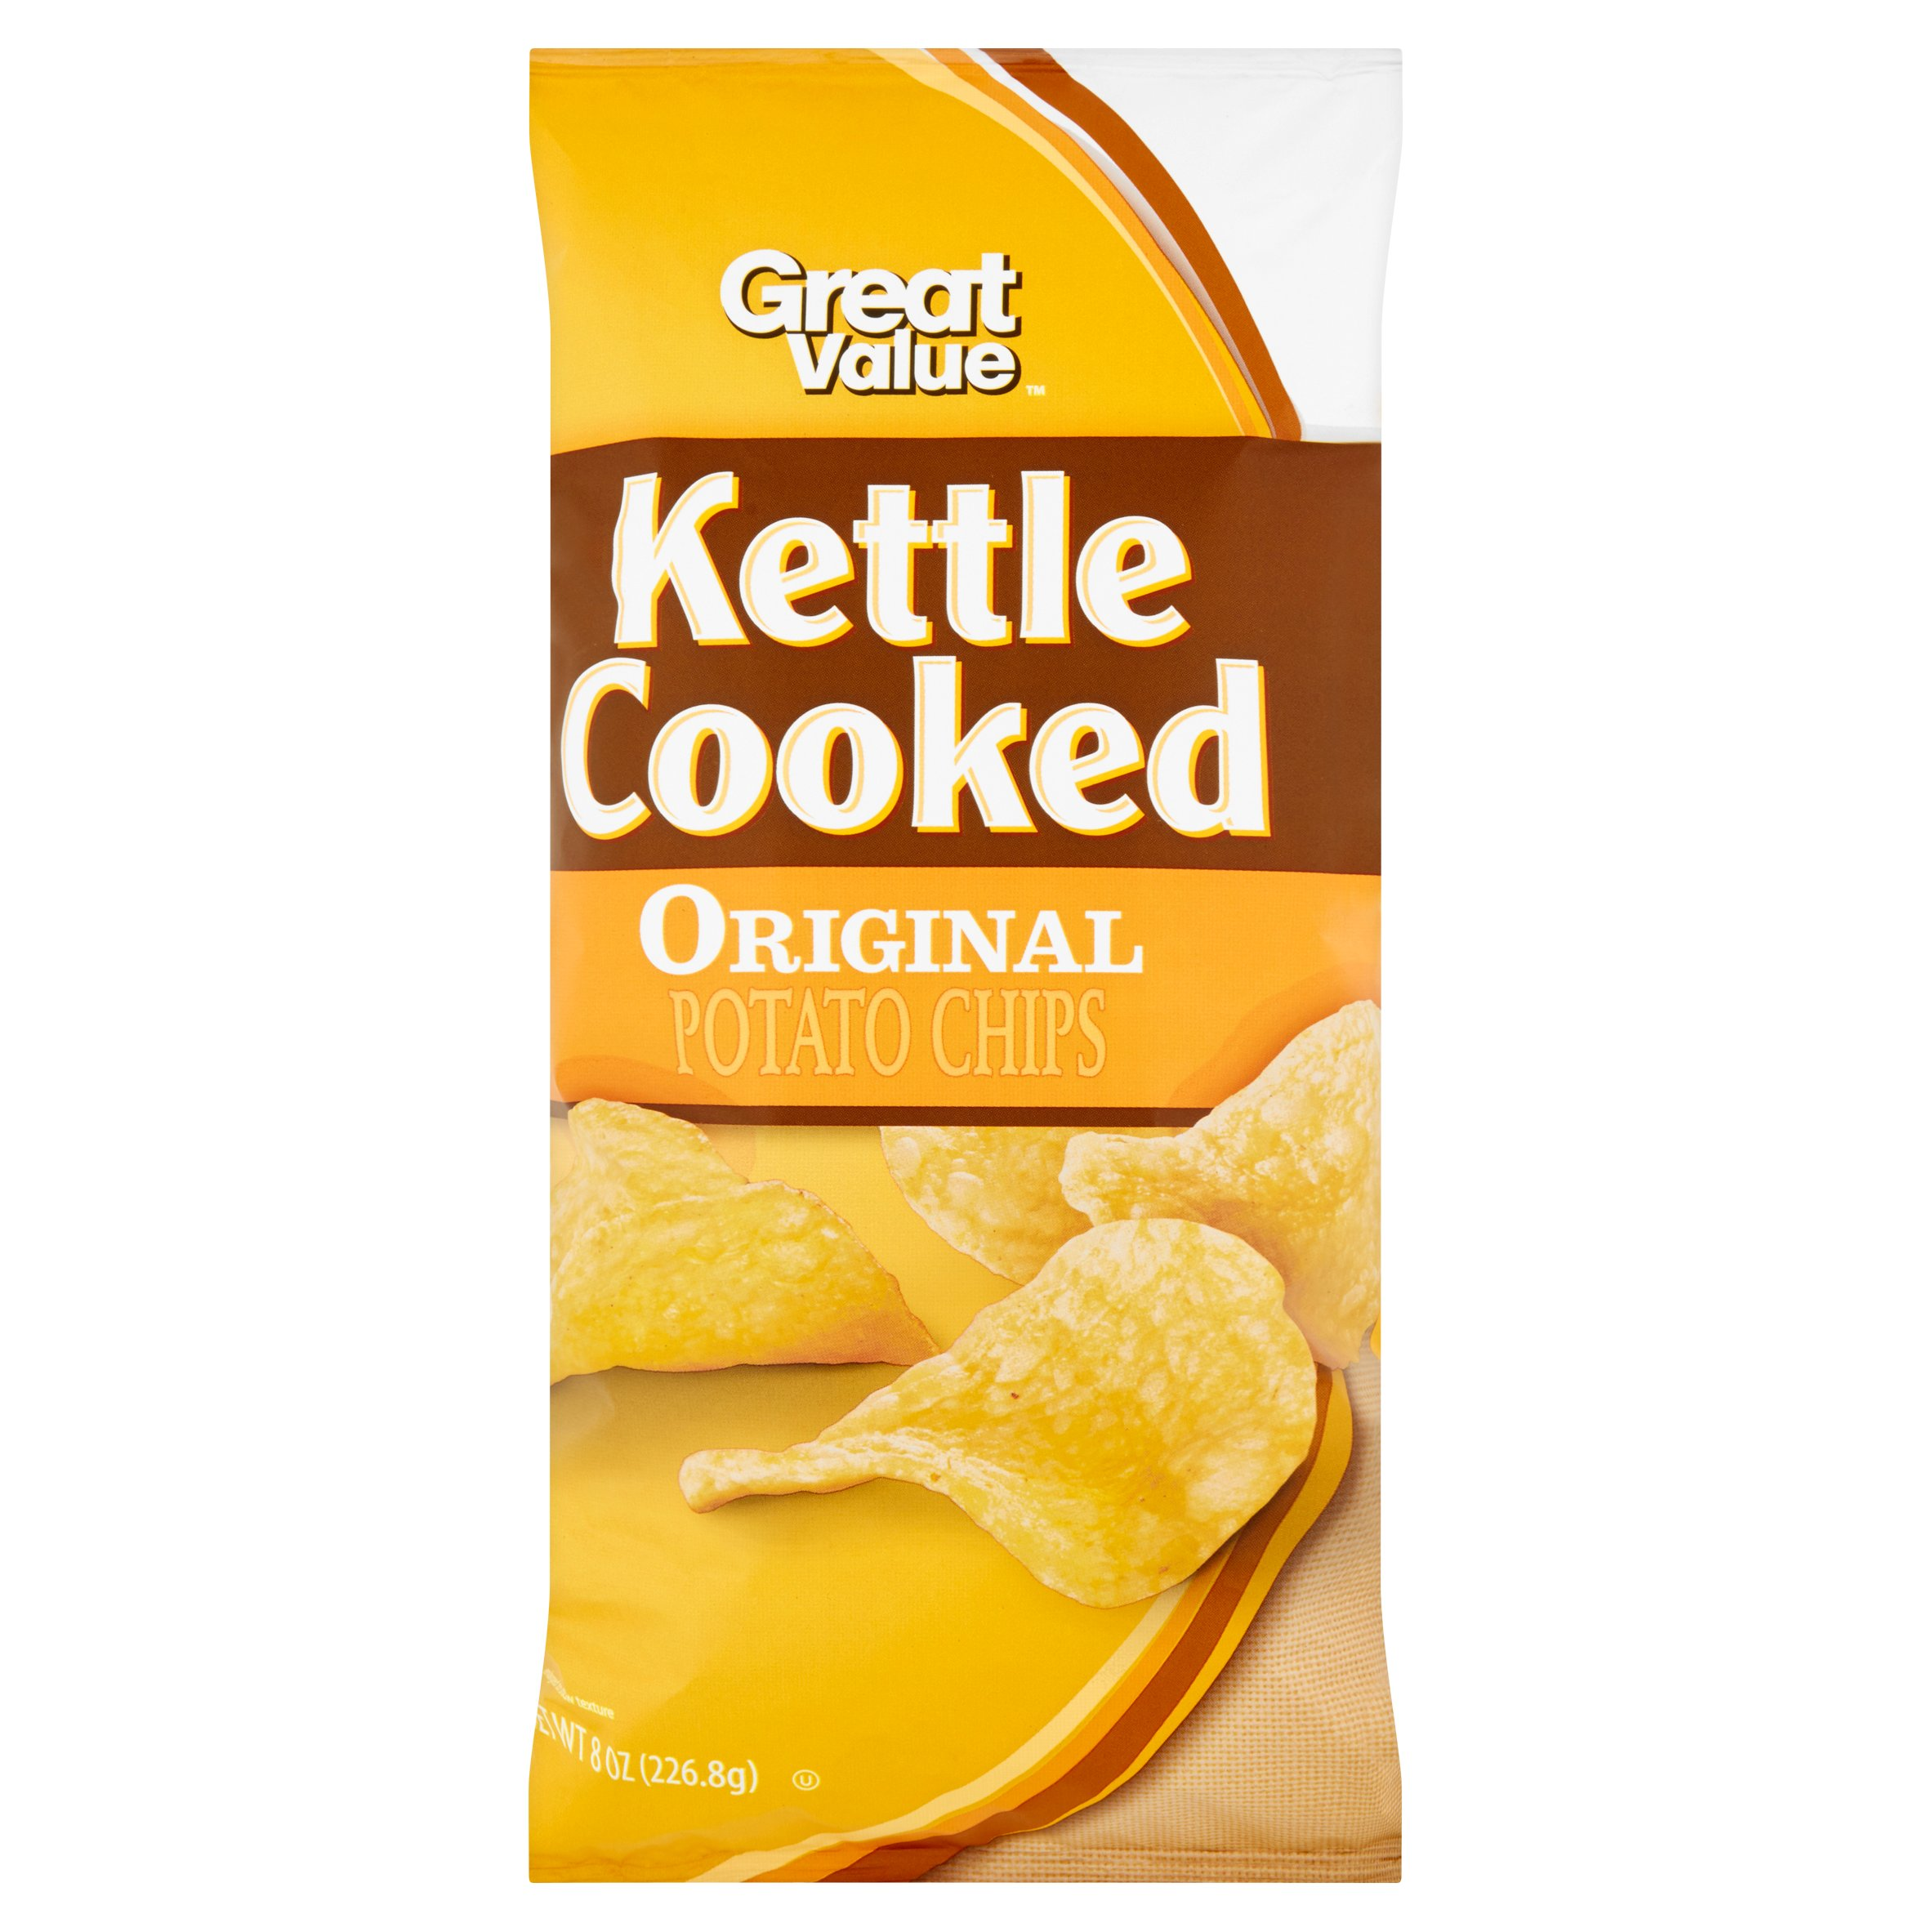 Great Value Kettle Cooked Original Potato Chips, 8 oz by Wal-Mart Stores Inc.